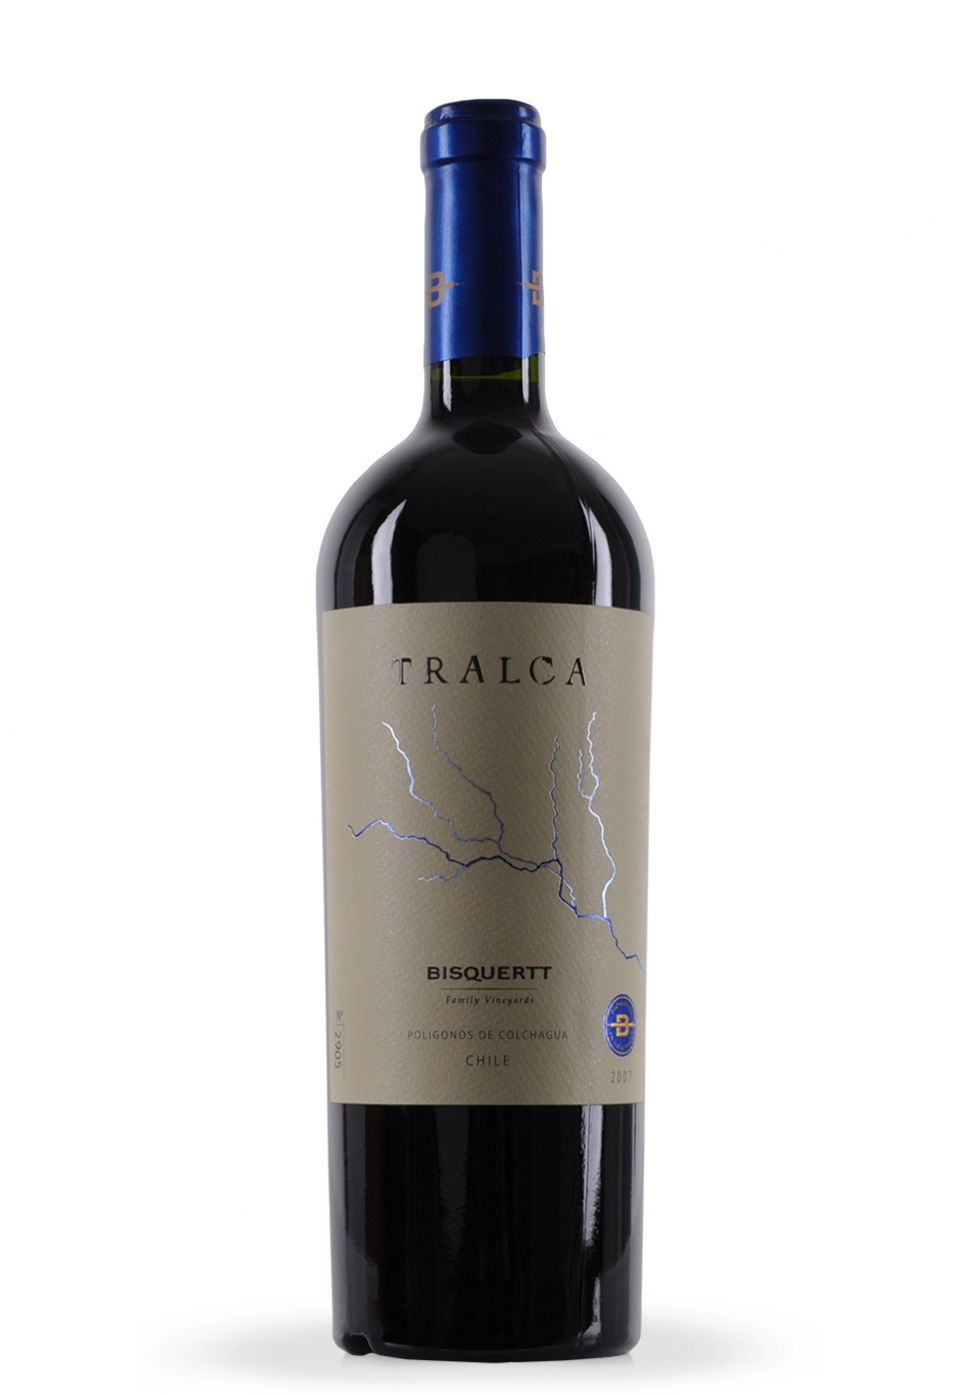 Vin Tralca, Bisquertt Family Vineyards, 2007 (0.75L)